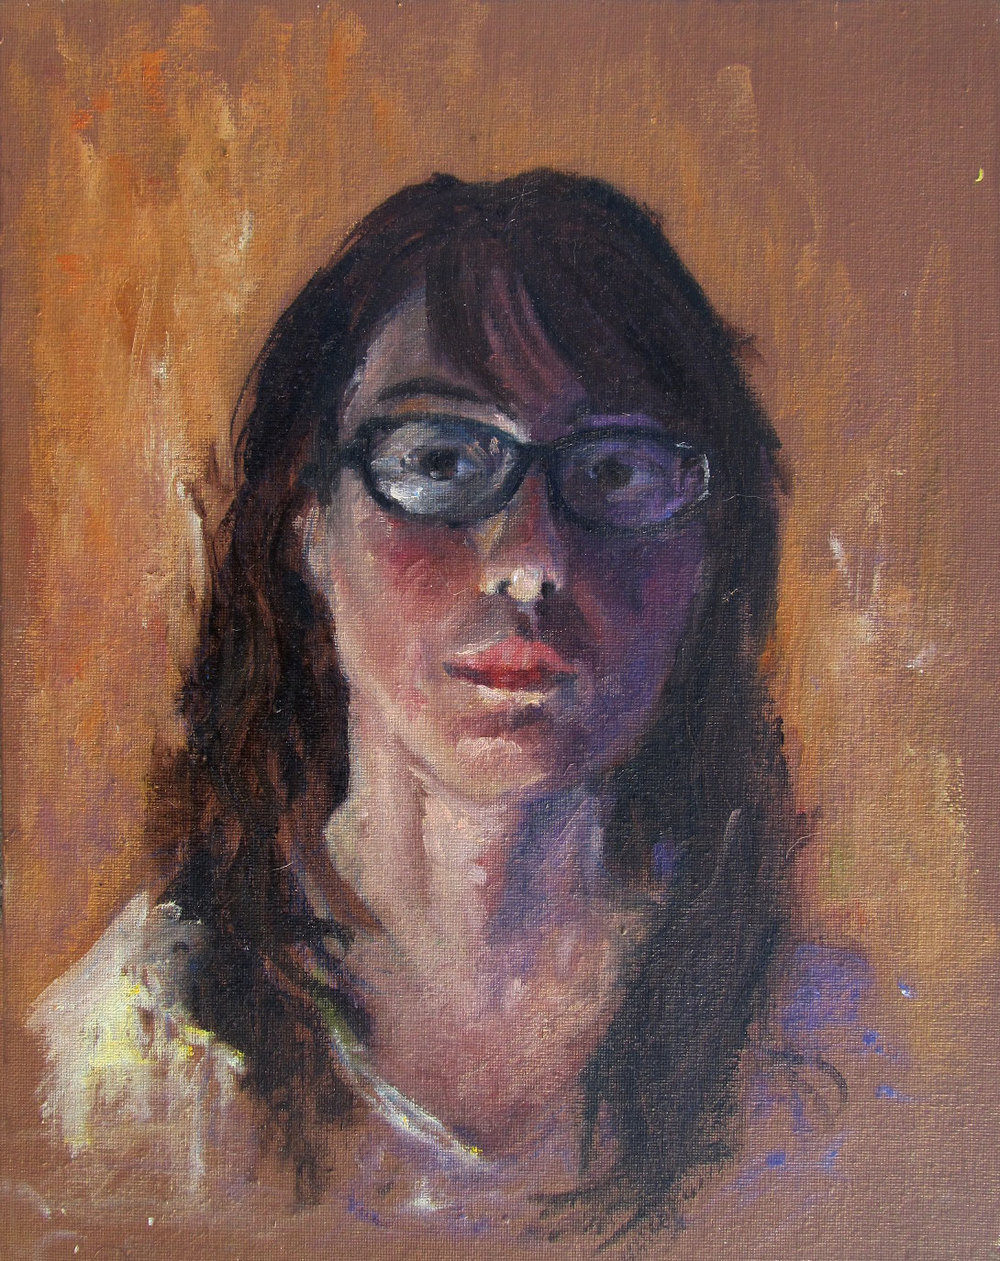 Sburtner_SelfPortrait.jpg